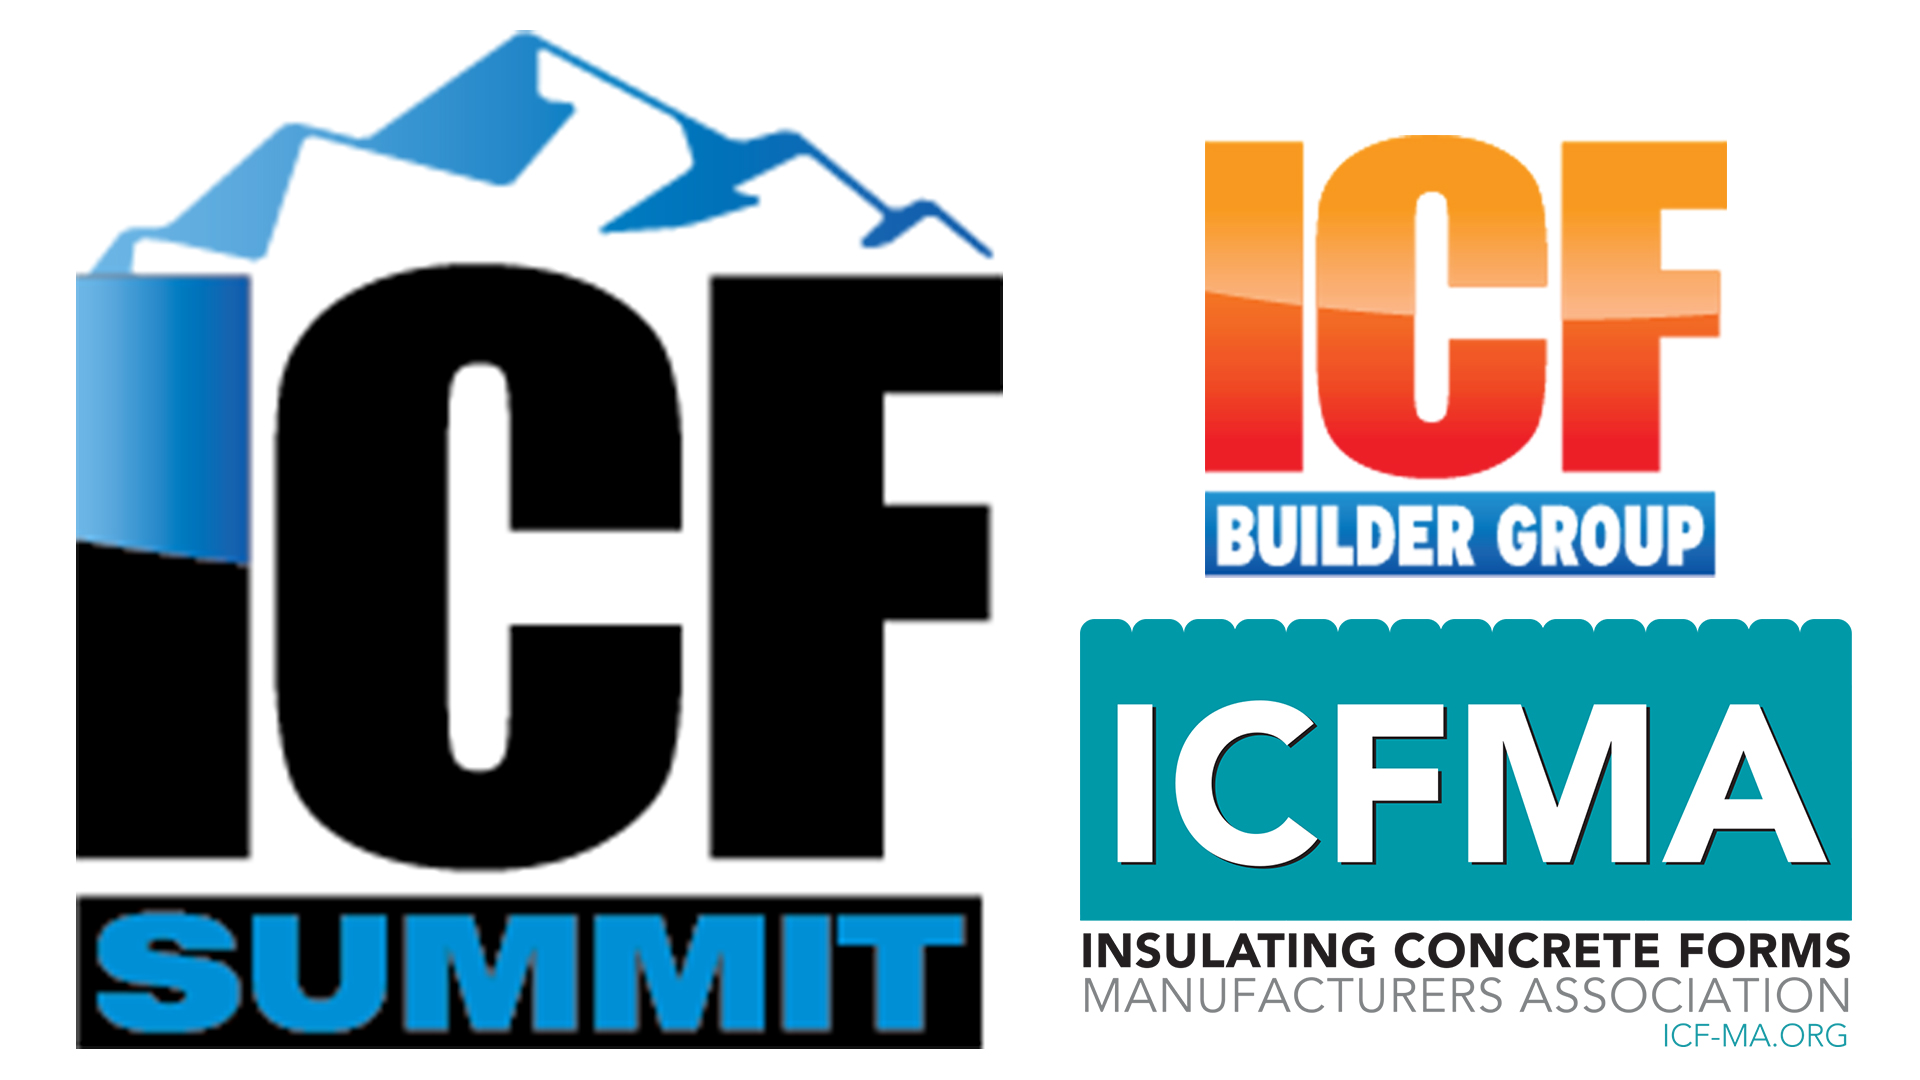 The 2018 ICF Summit